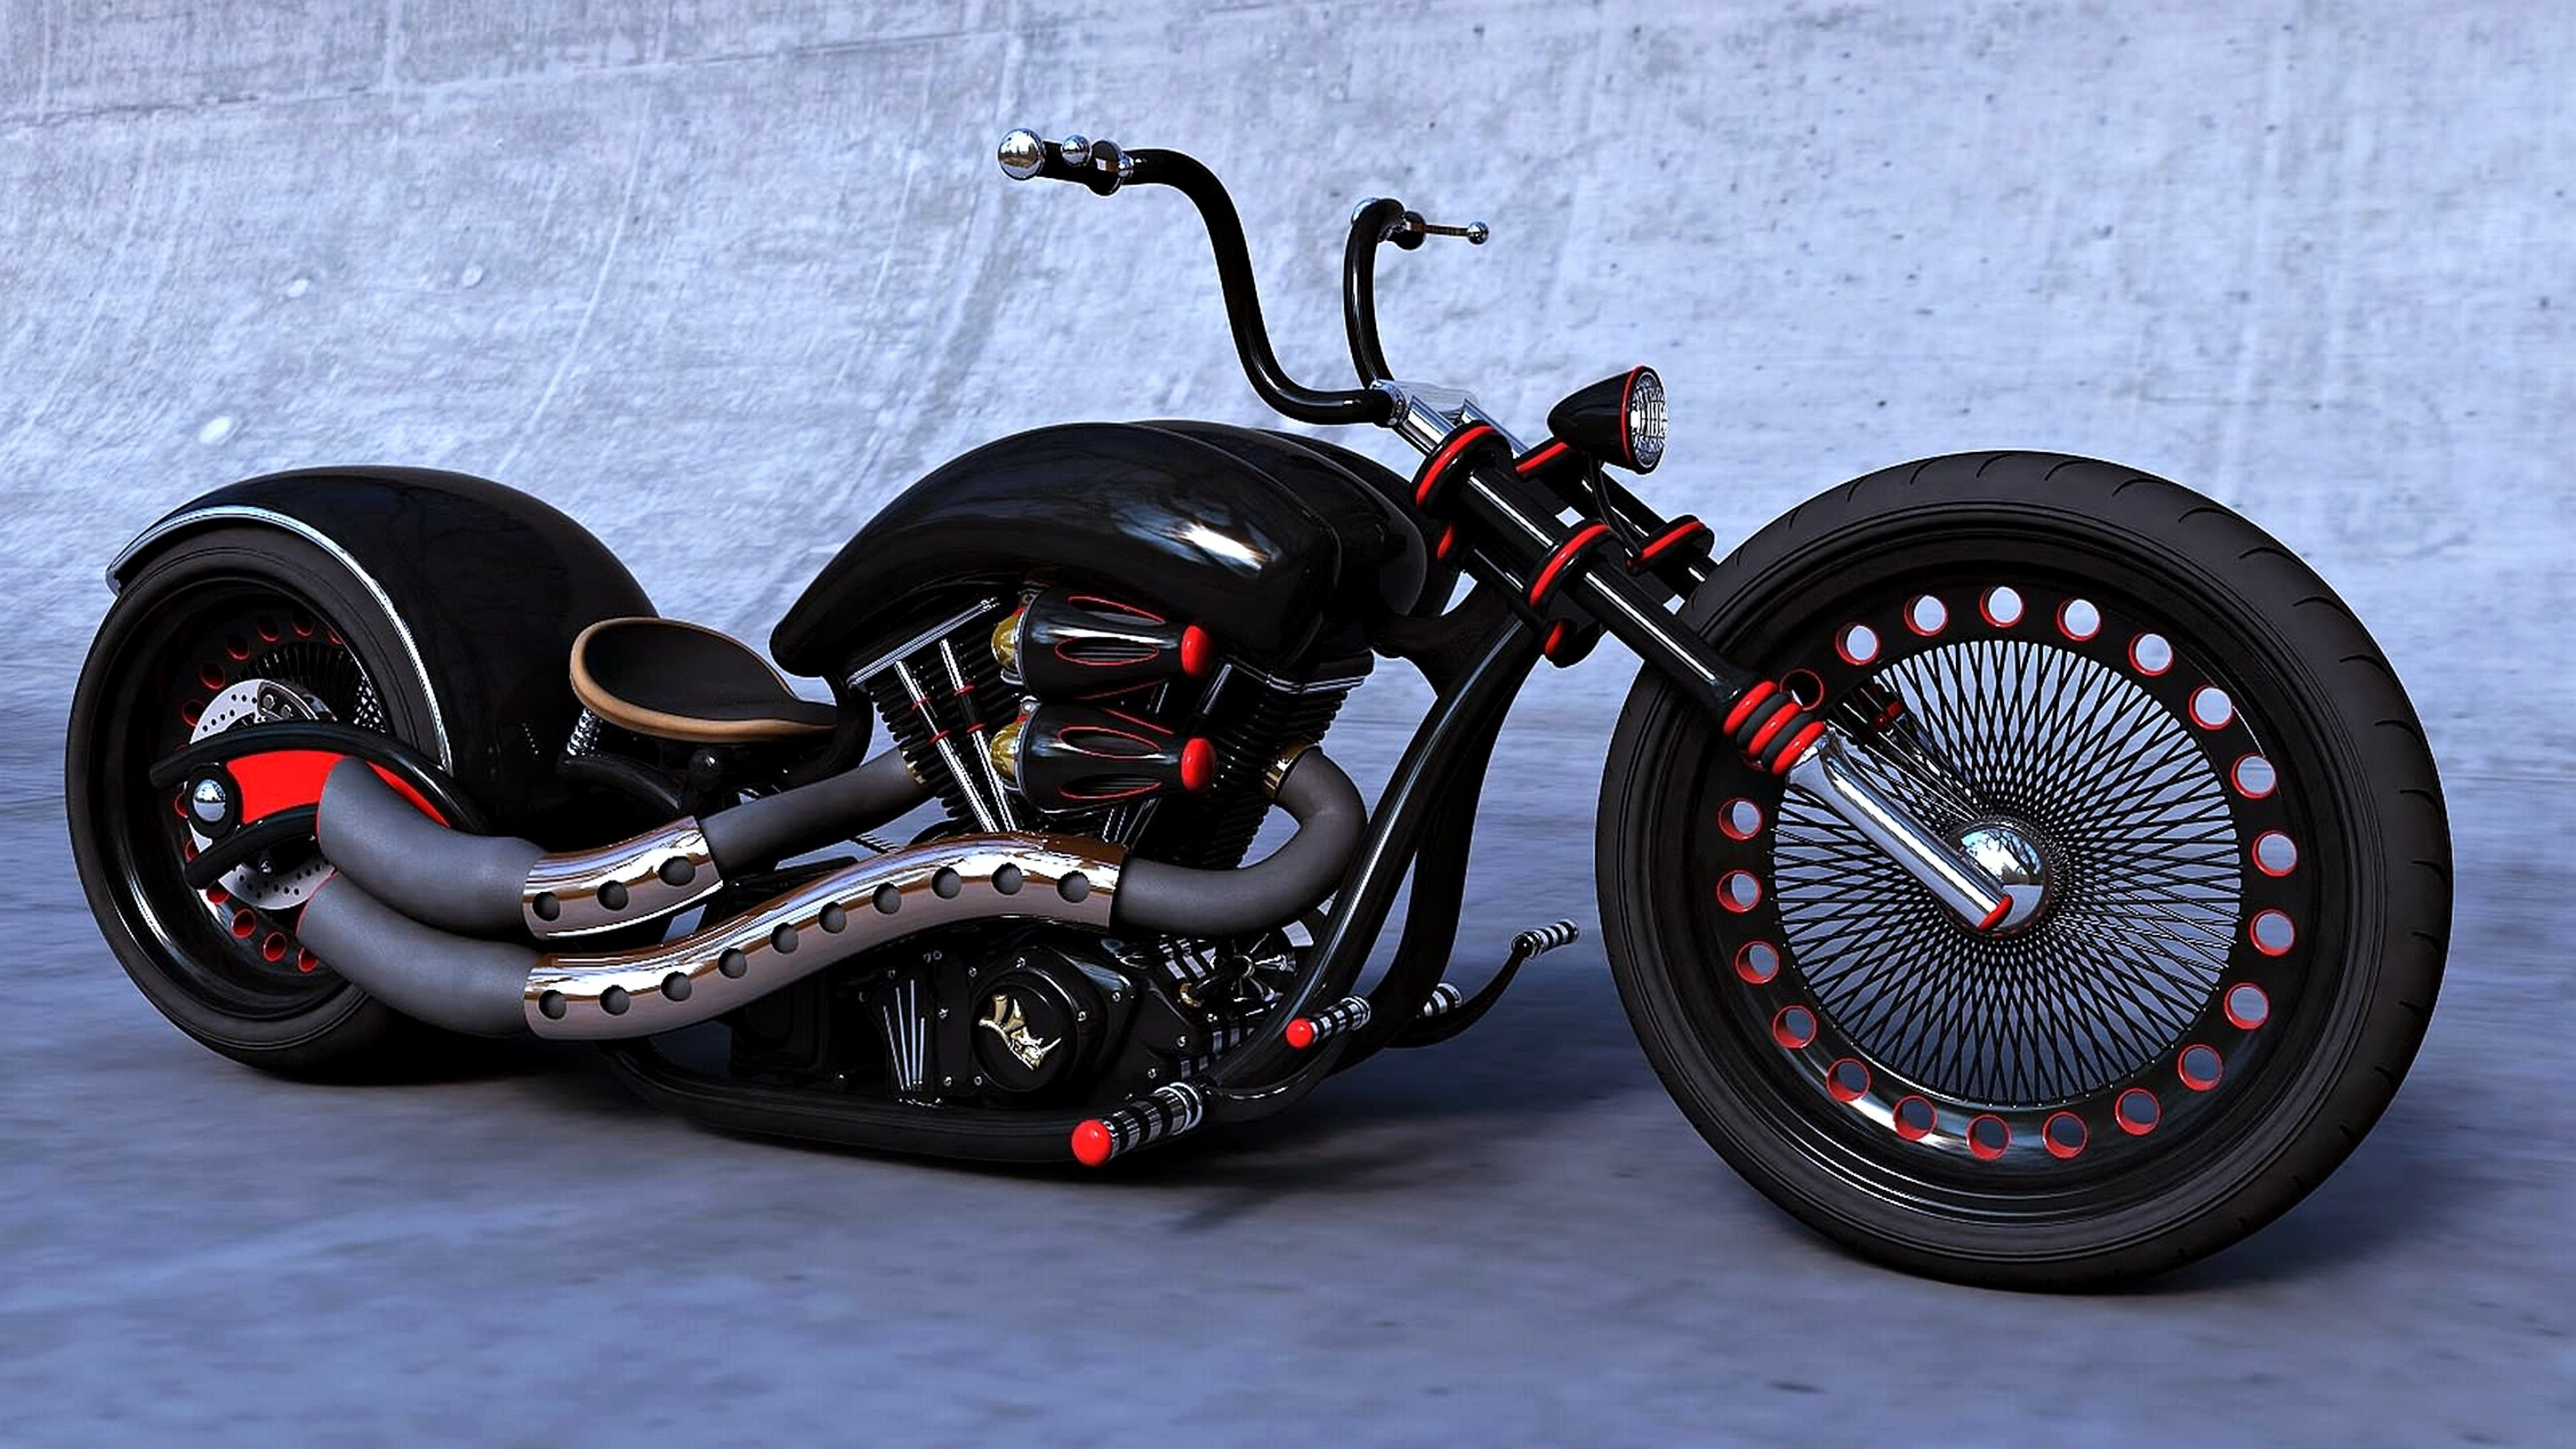 Harley Davidson Wallpaper Chopper